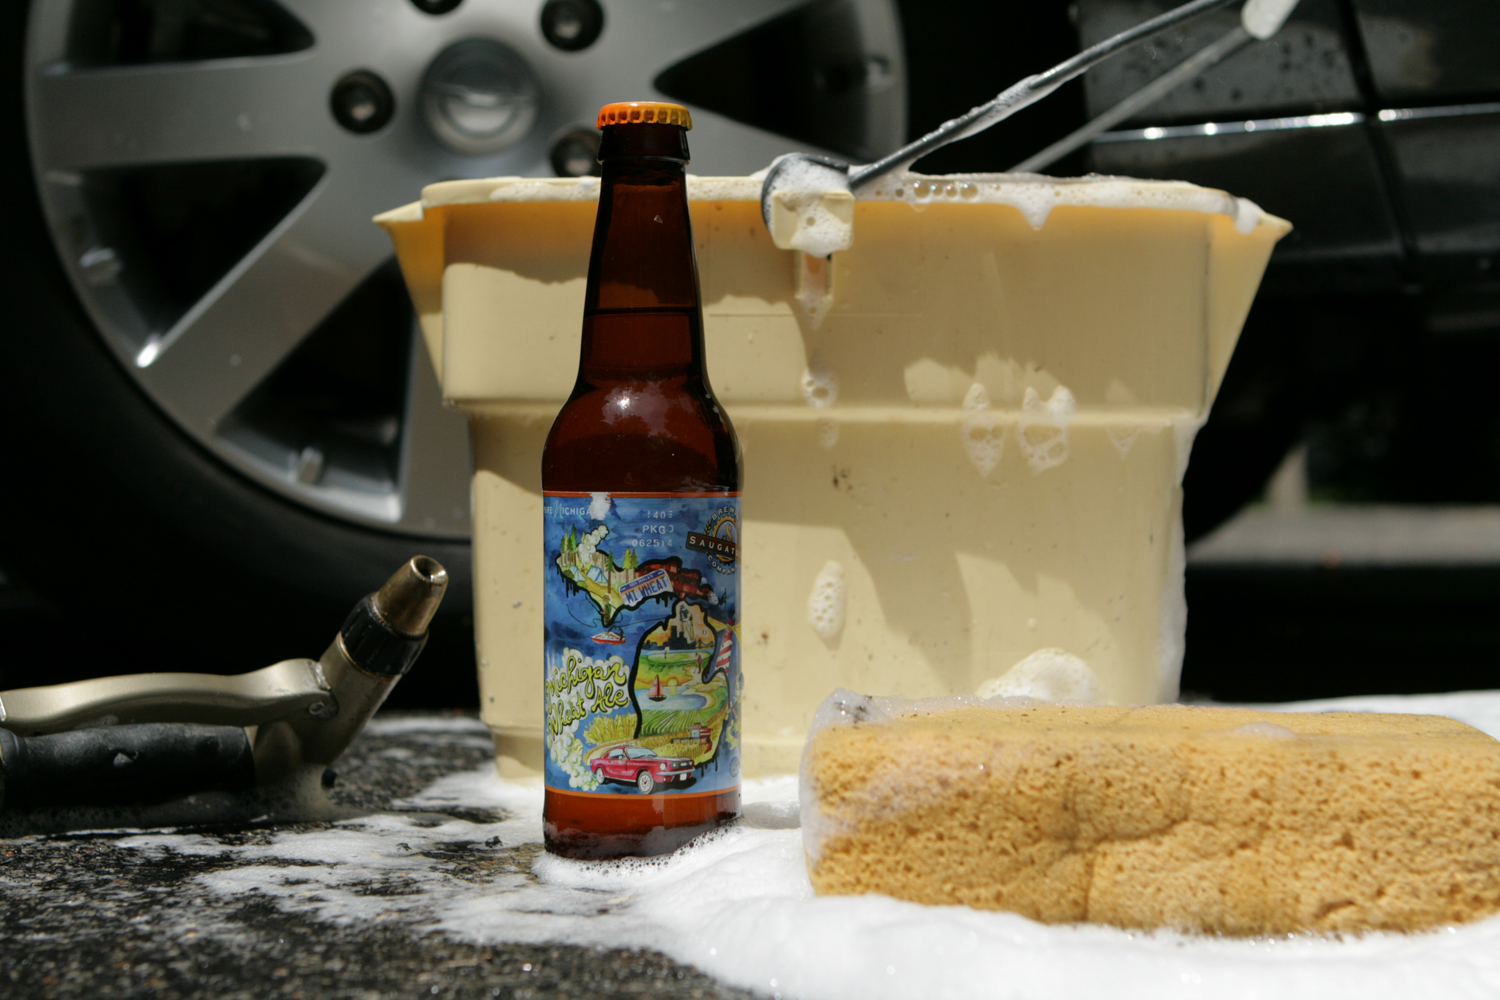 The seasonal ale from Saugatuck is Michigan Wheat summer beer.